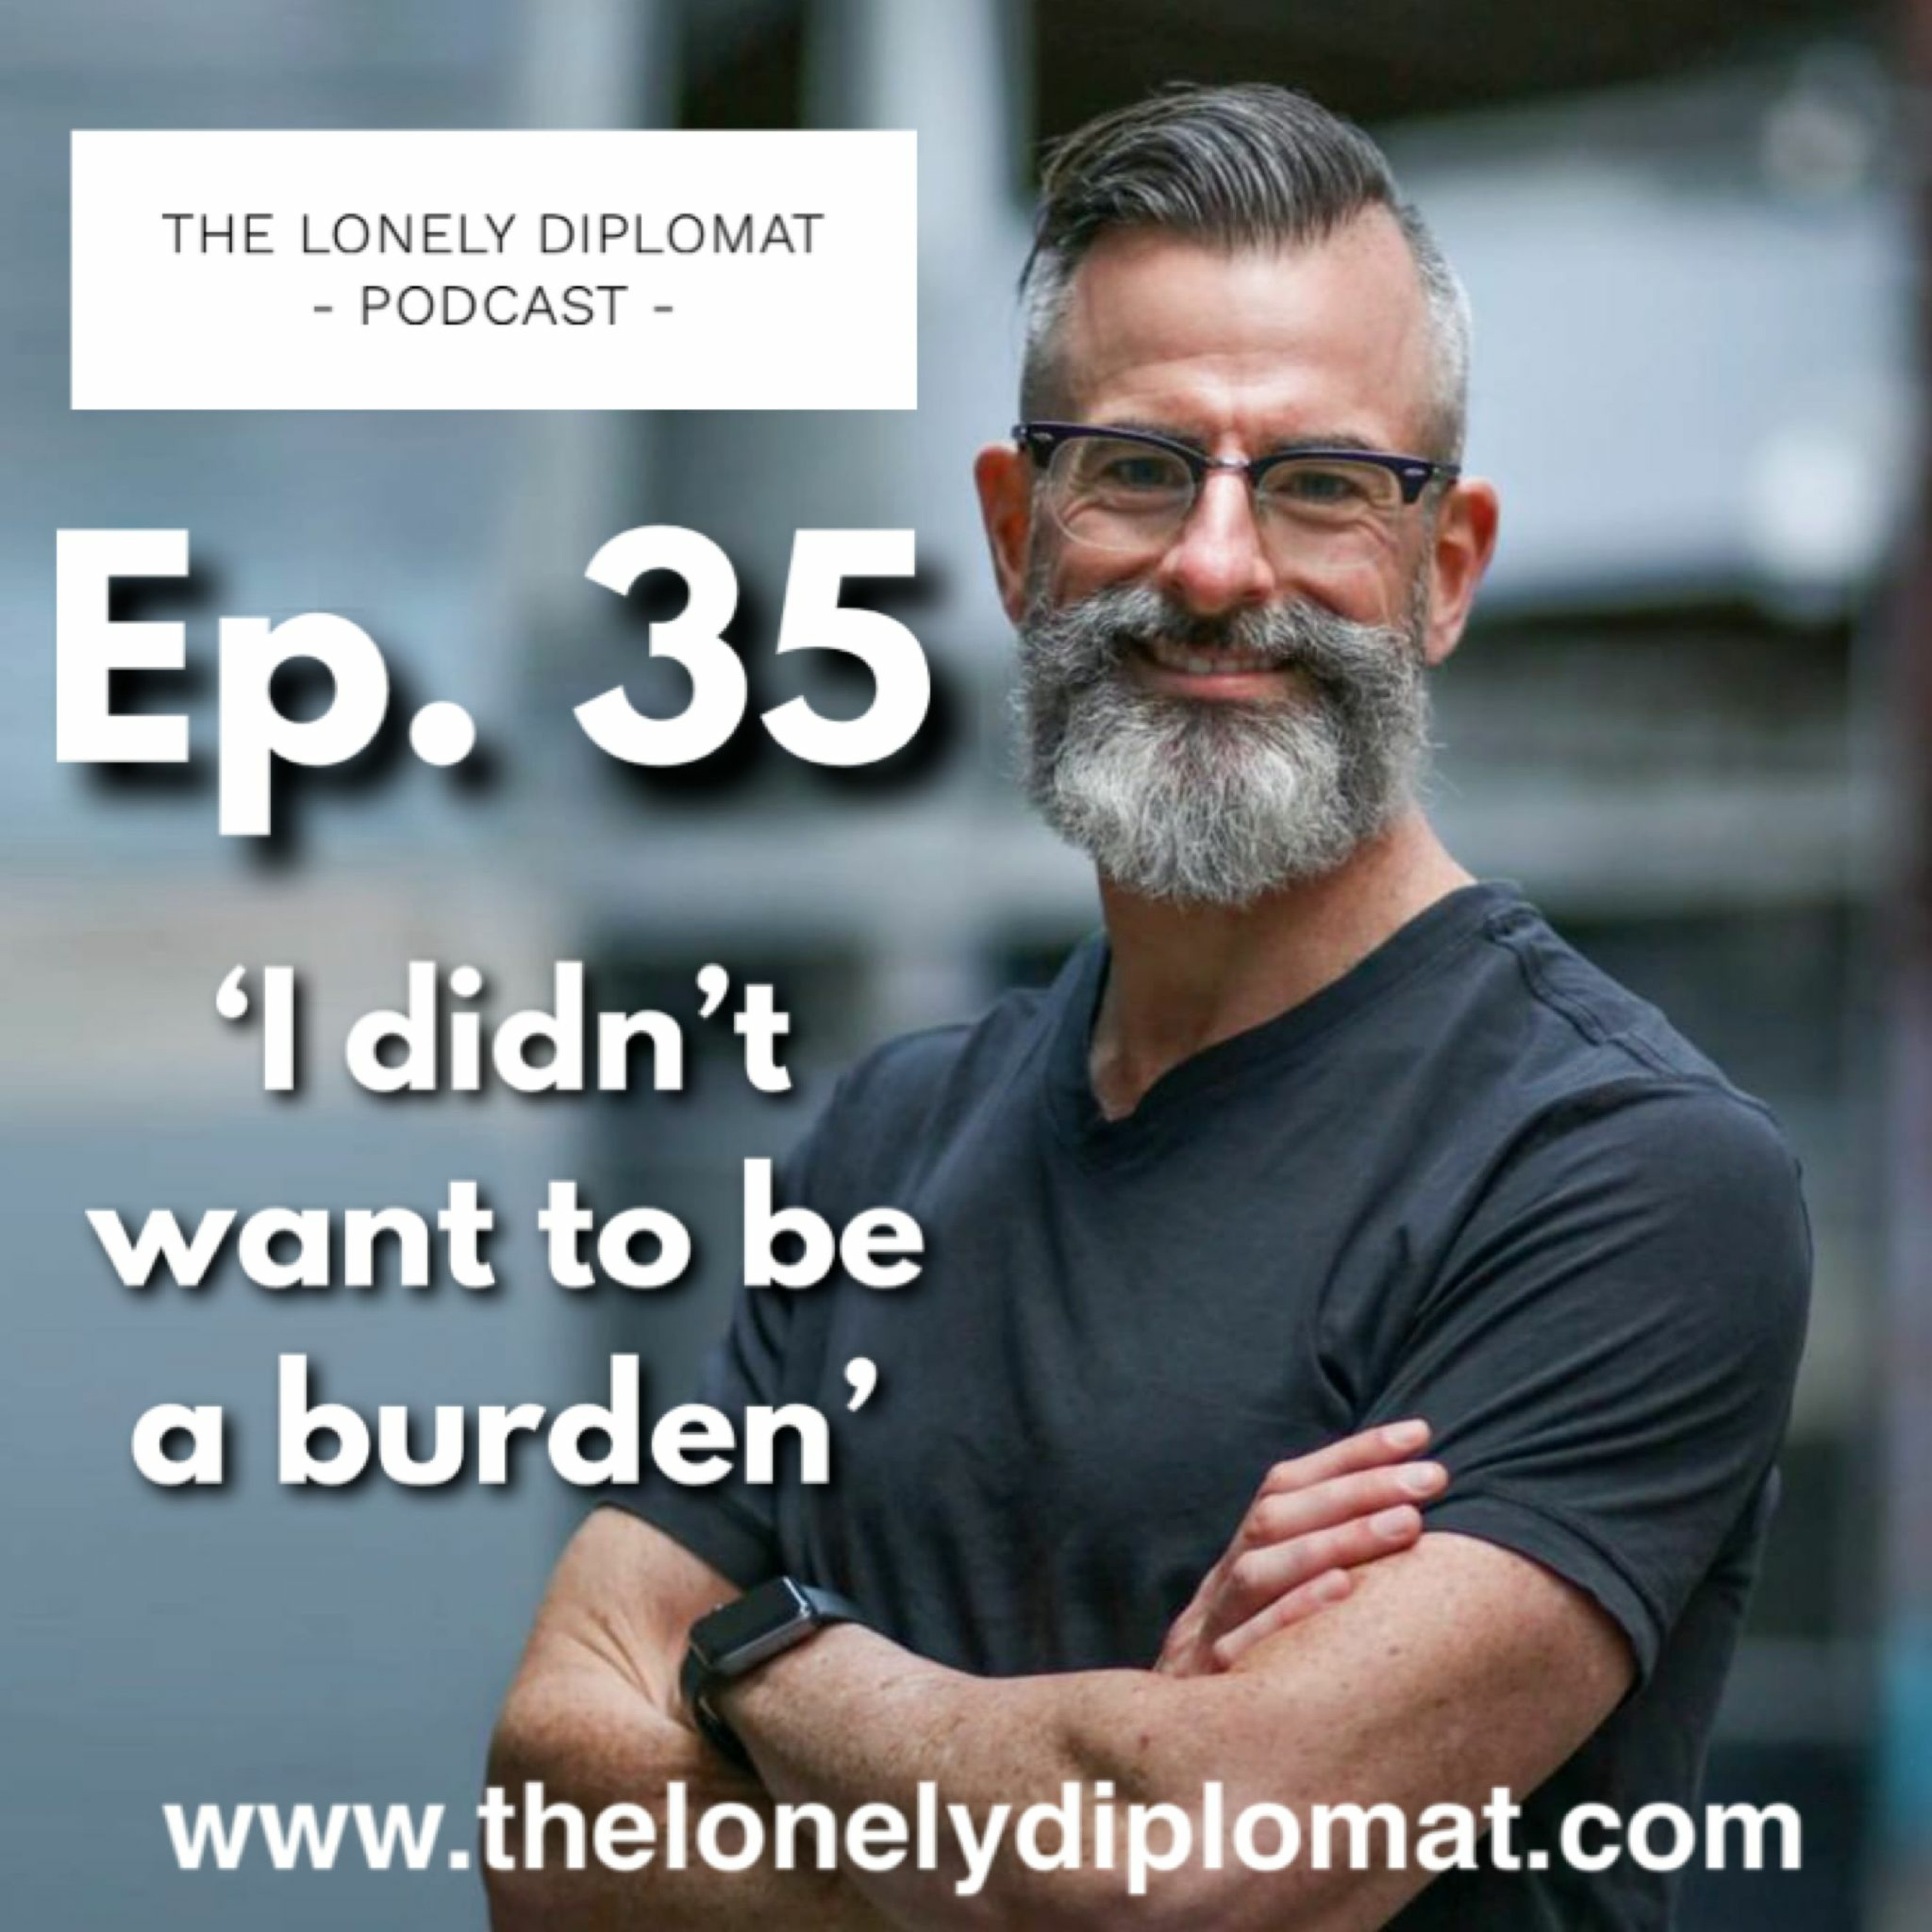 Ep. 35 - 'I didn't want to be a burden'